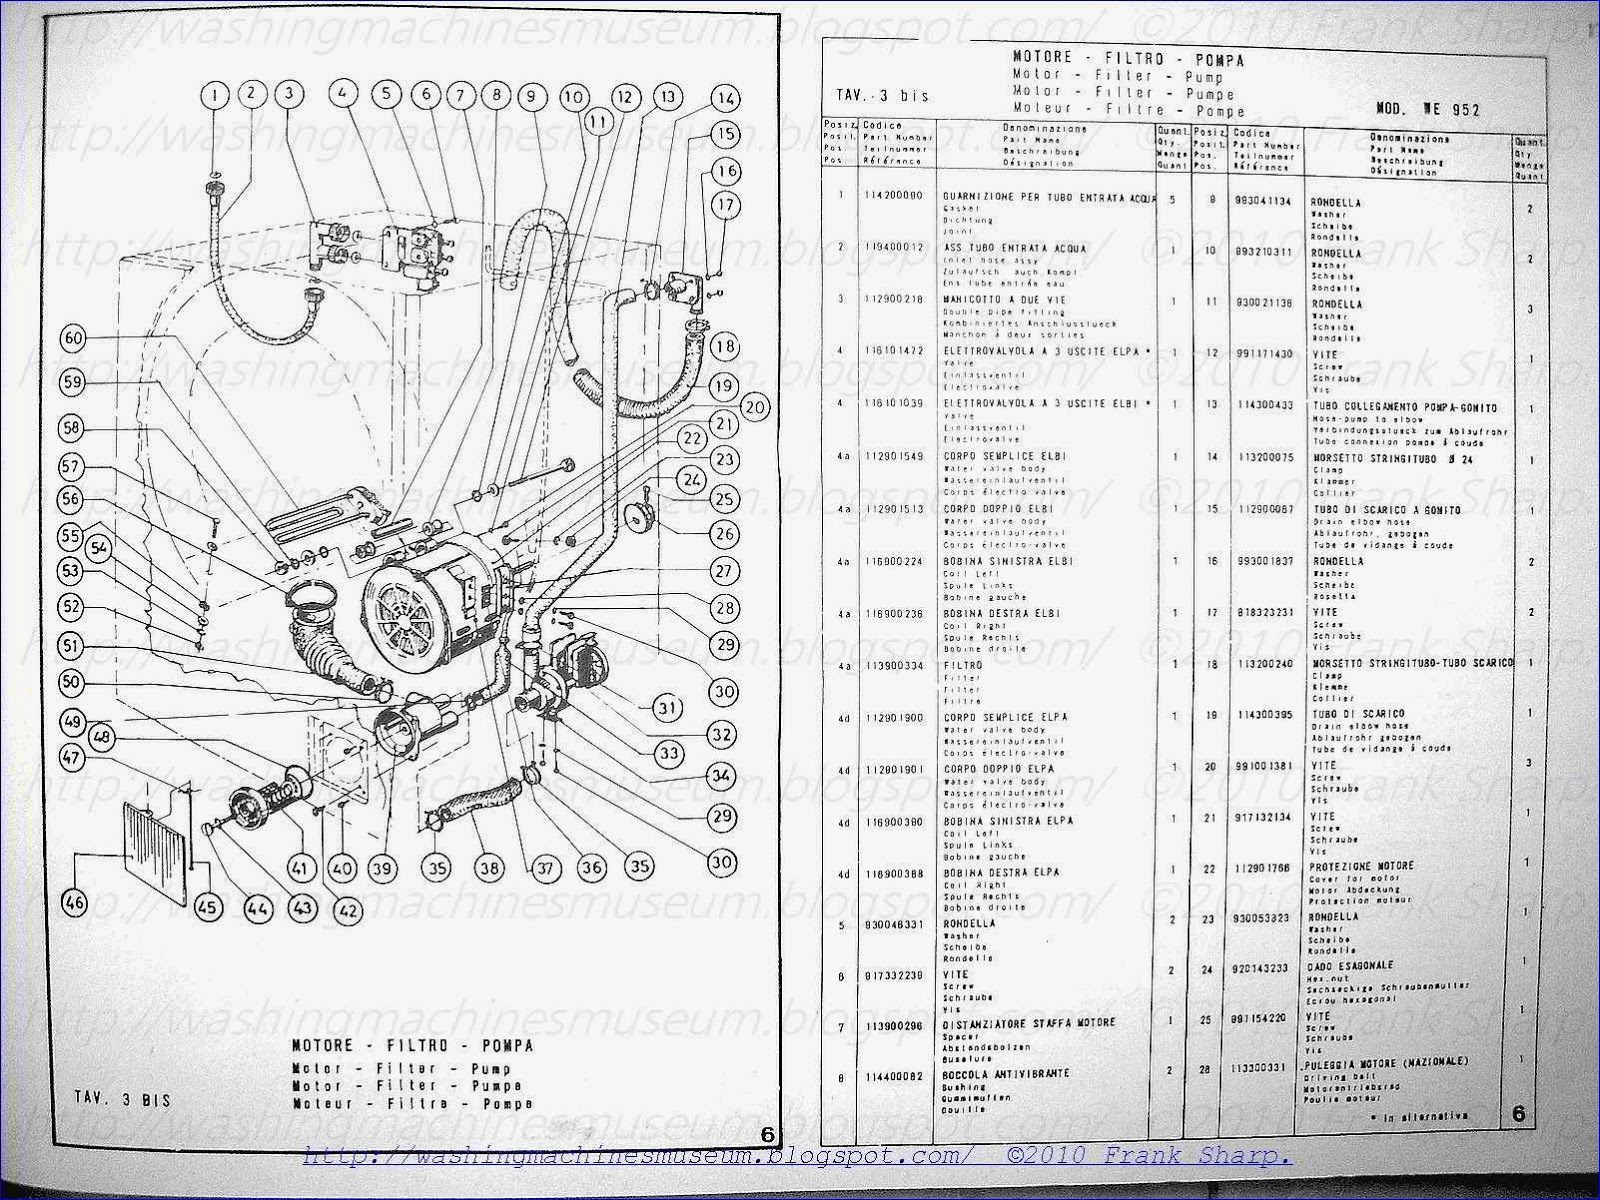 Maytag A108 Washer Wiring Schematics 36 Diagram Images Washing Machine And Imgh 06838 Wms Philco Motor Diagrams At